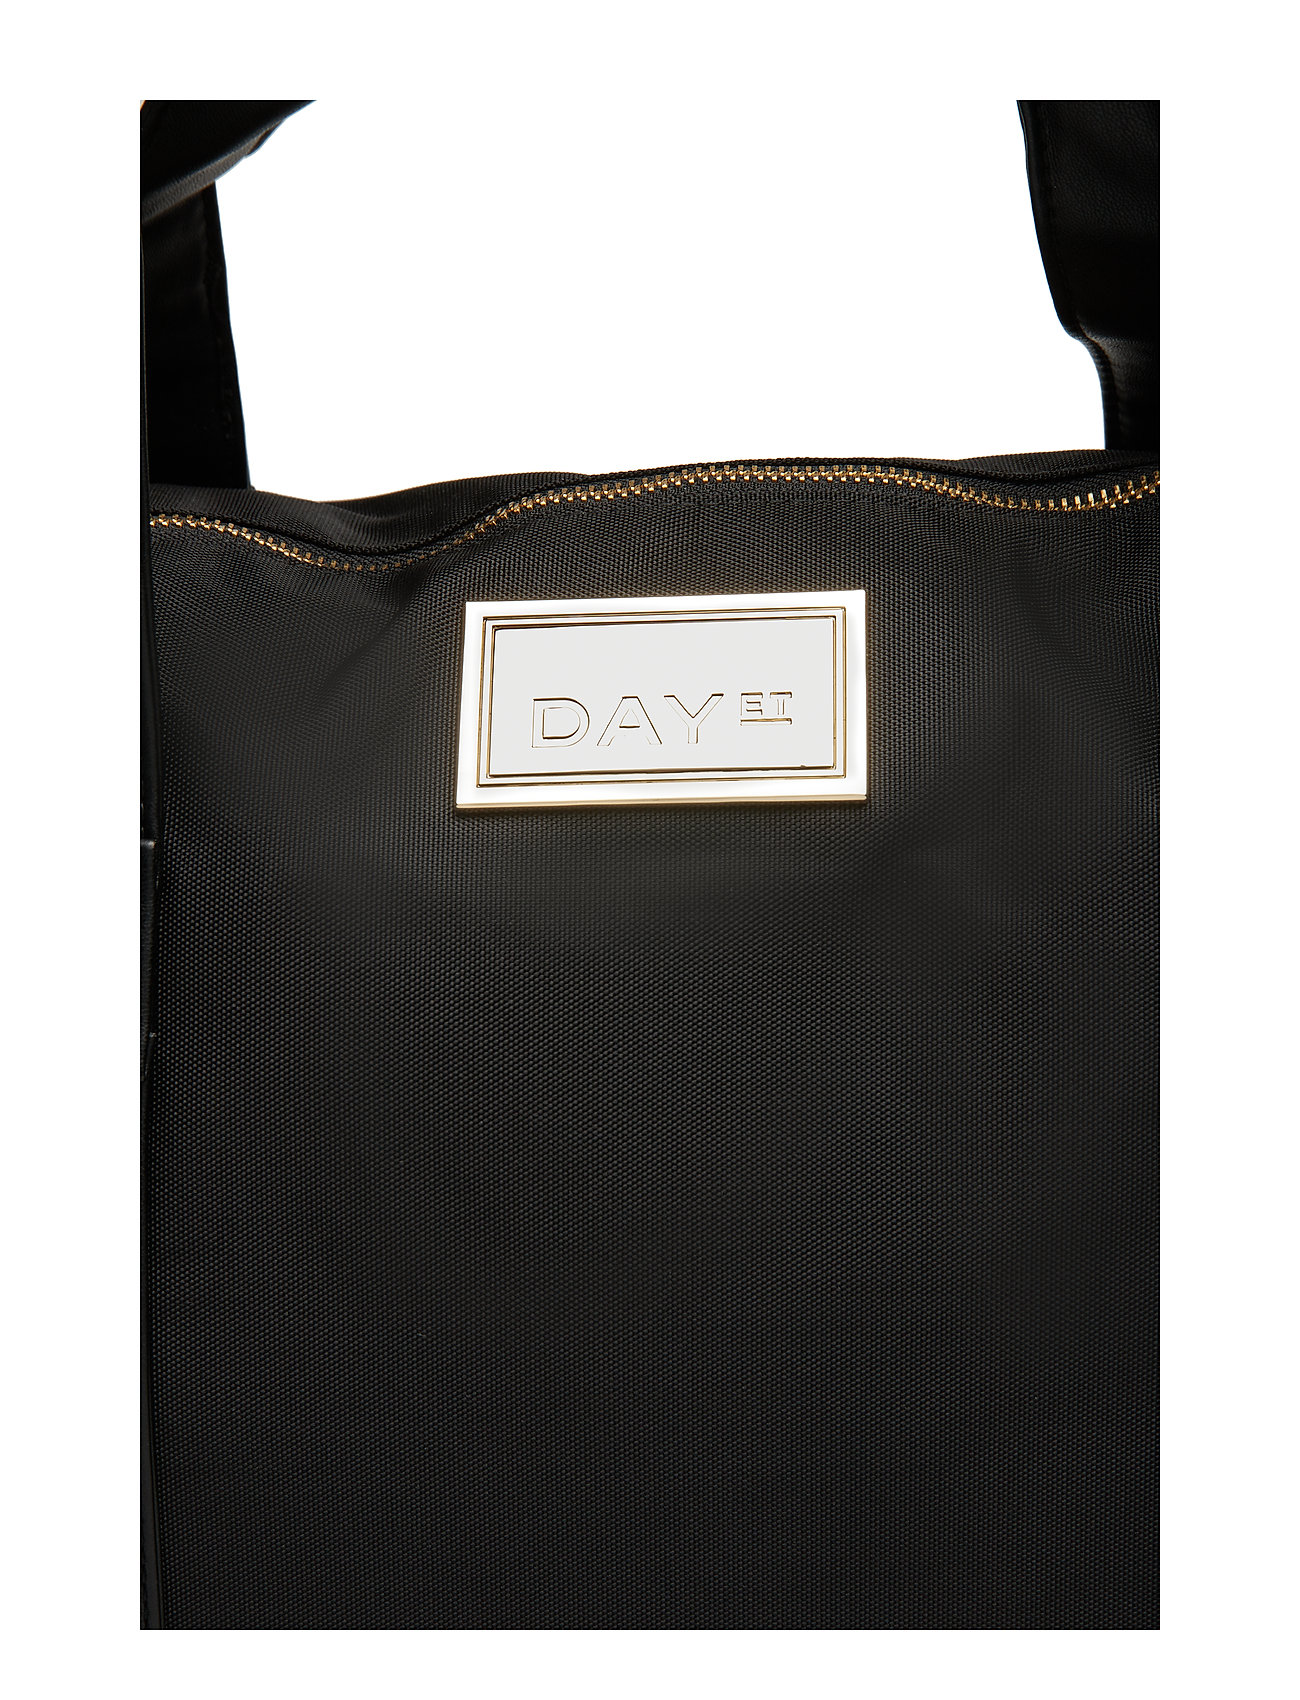 Luxe Luxe Luxe Gw BagblackEt Day BagblackEt Gw Luxe Day Day BagblackEt Gw Gw Day e9IYE2HWbD